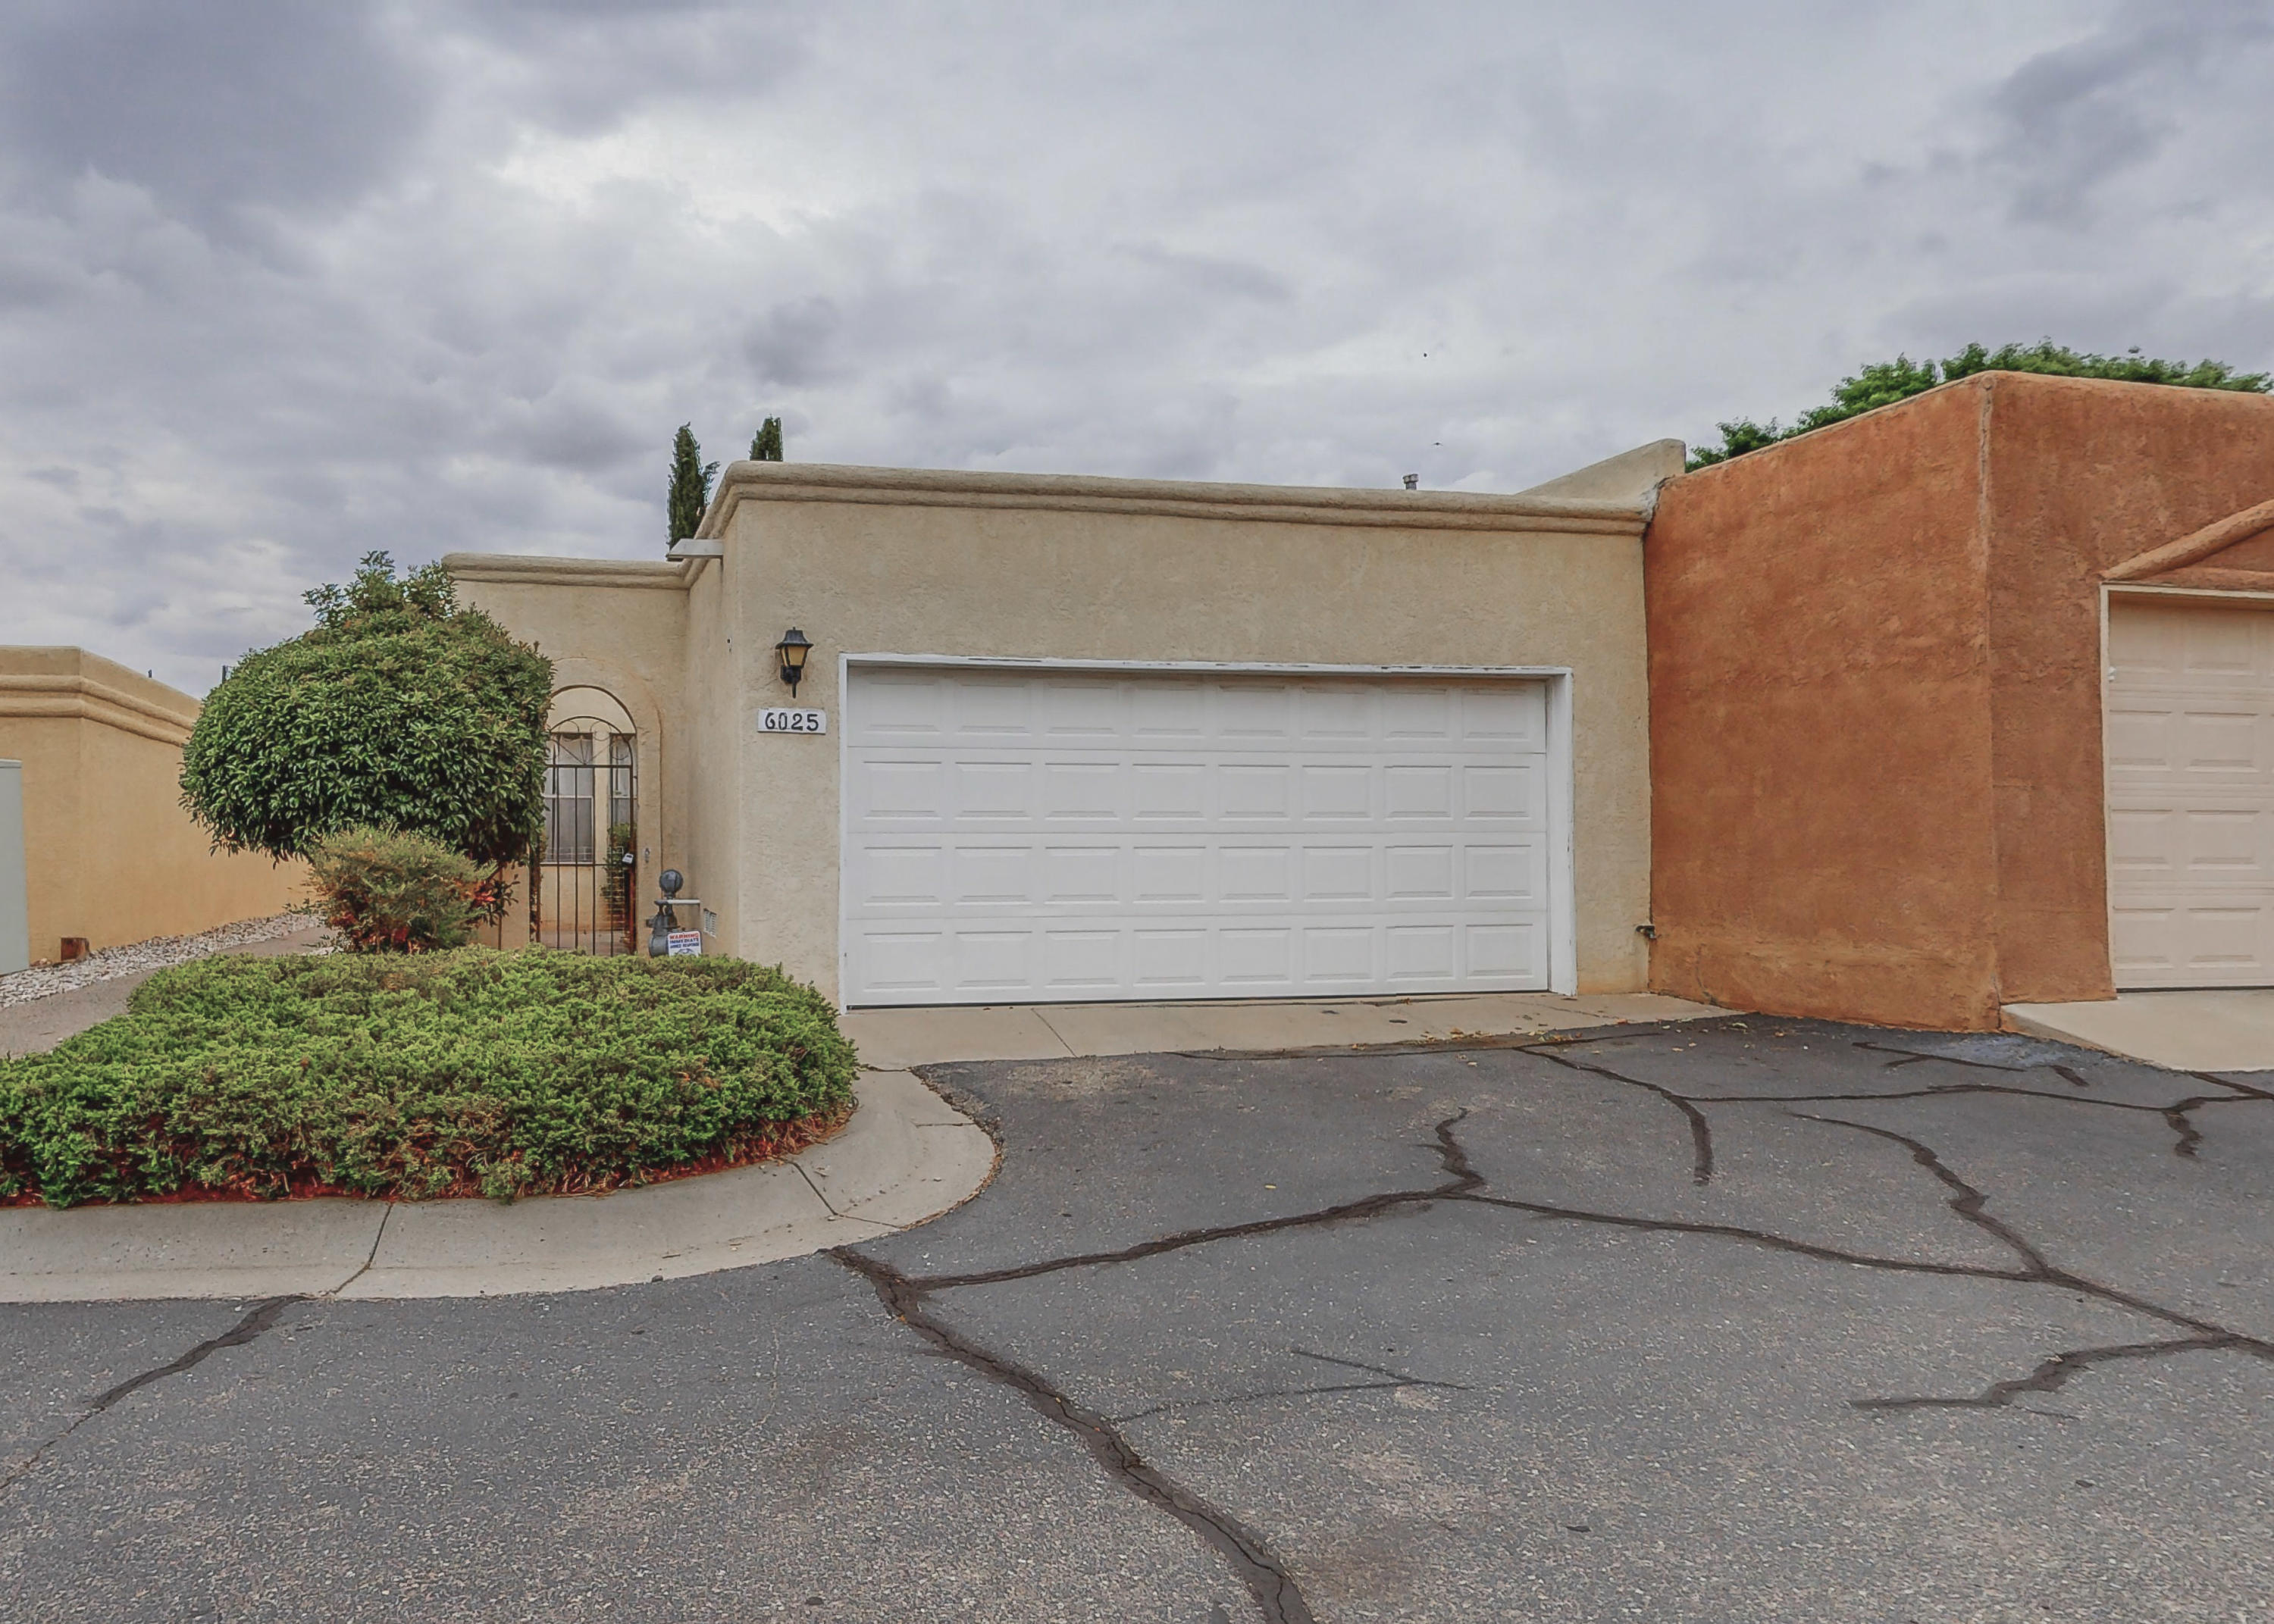 If you're looking for a low maintenance and relaxing lifestyle, you just found it! This lovely Townhome is only attached on one side (east side) and located in the desirable Chimney Ridge community, close to Arroyo Del Oso Golf Course. Restaurants and shopping nearby, easy freeway access and all that the Northeast of ABQ has to offer.  This 2 bedroom, 2 bath home features Refrigerated air, a remodeled modern kitchen, ceramic tile flooring, skylights, brand new carpet, fresh interior paint, cozy wood-burning fireplace, low-maintenance patio/backyard. All appliances stay including front-load washer/dryer.  HOA covers water, trash removal, exterior stucco, roof, front landscape, common areas including pool, tennis court and clubhouse. All units are owner-occupied-no rentals. Come take a look!